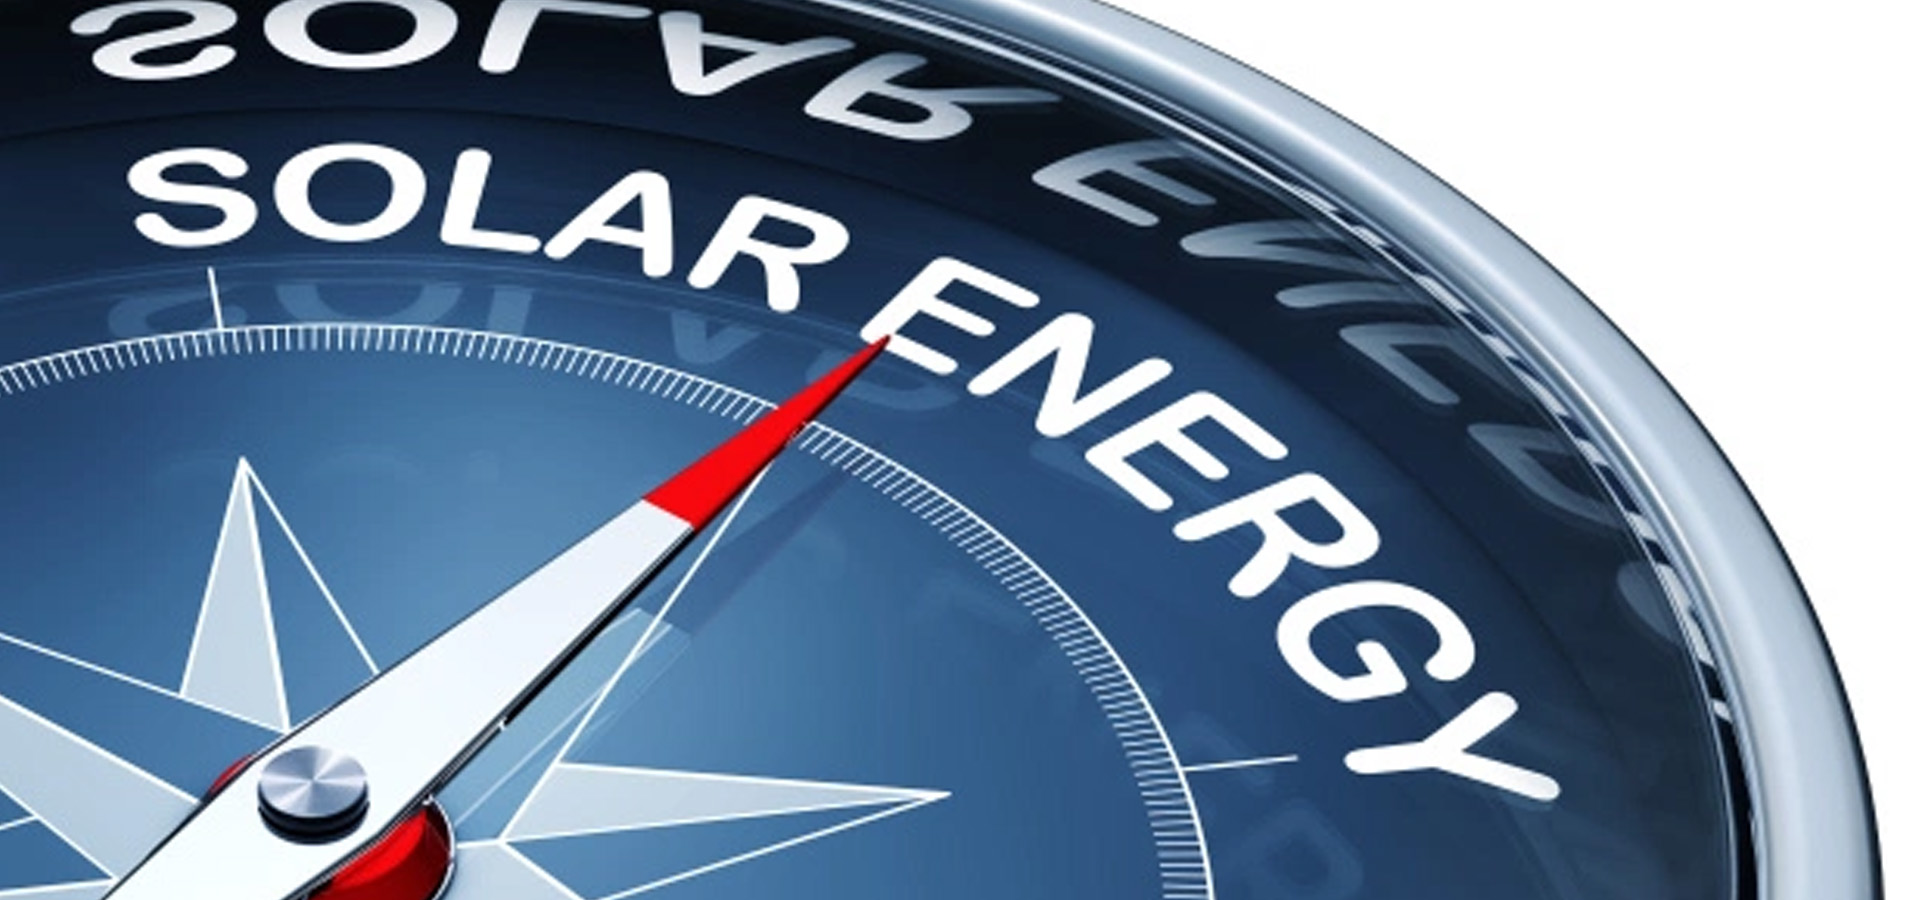 Most industries are offering new great products meant to lower the energy cost.